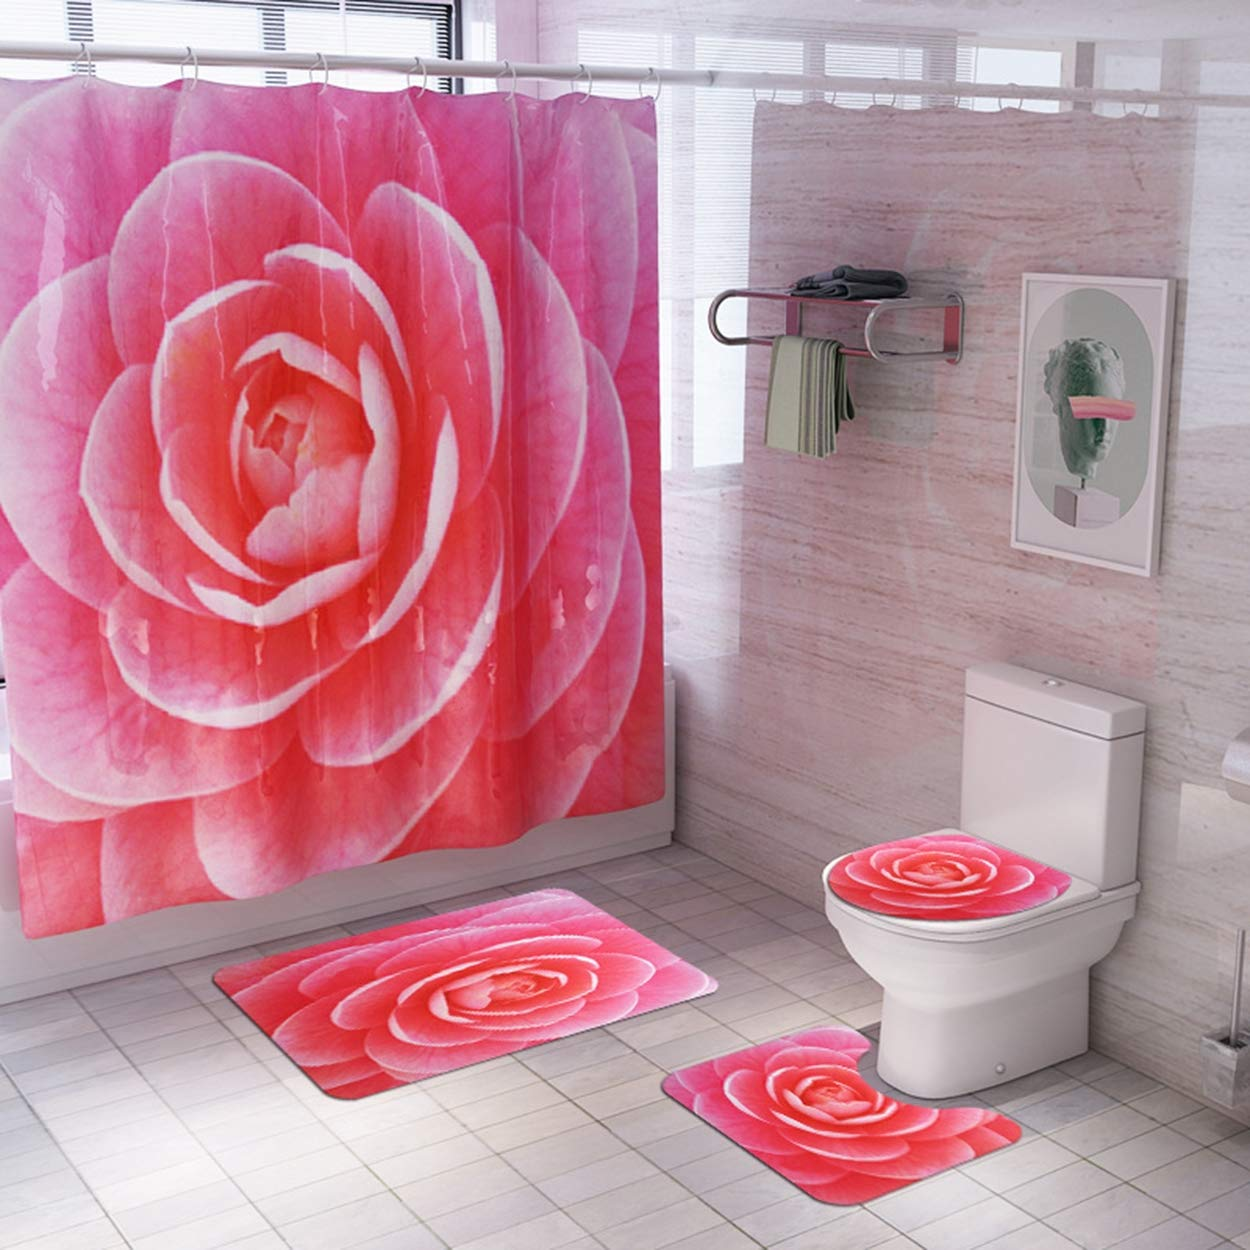 Z&S Shower Curtain + Carpet (Set of 4), Floral Pattern Modern Home Non-Slip Bathroom Mat 180 180Cm,Red